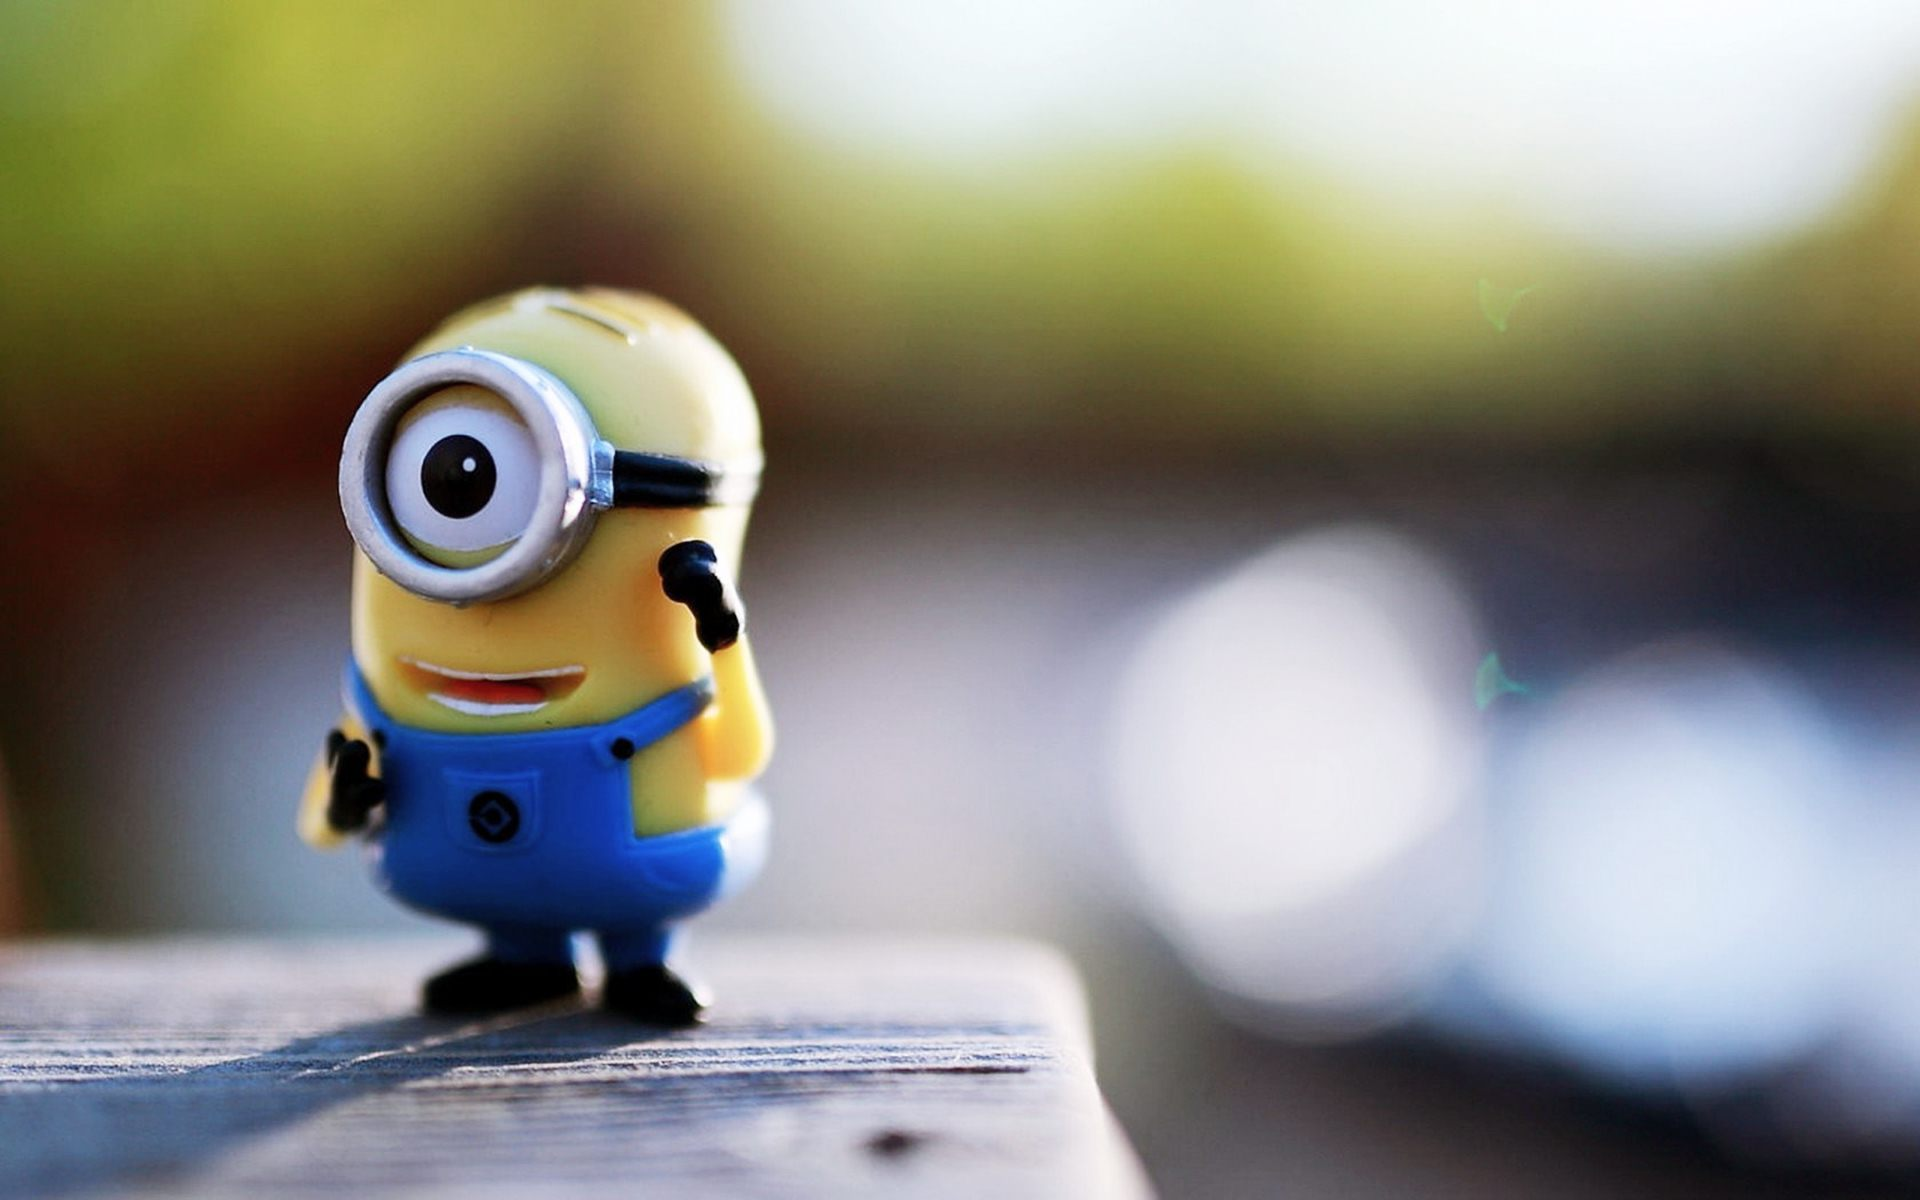 cute toy wallpaper 39312